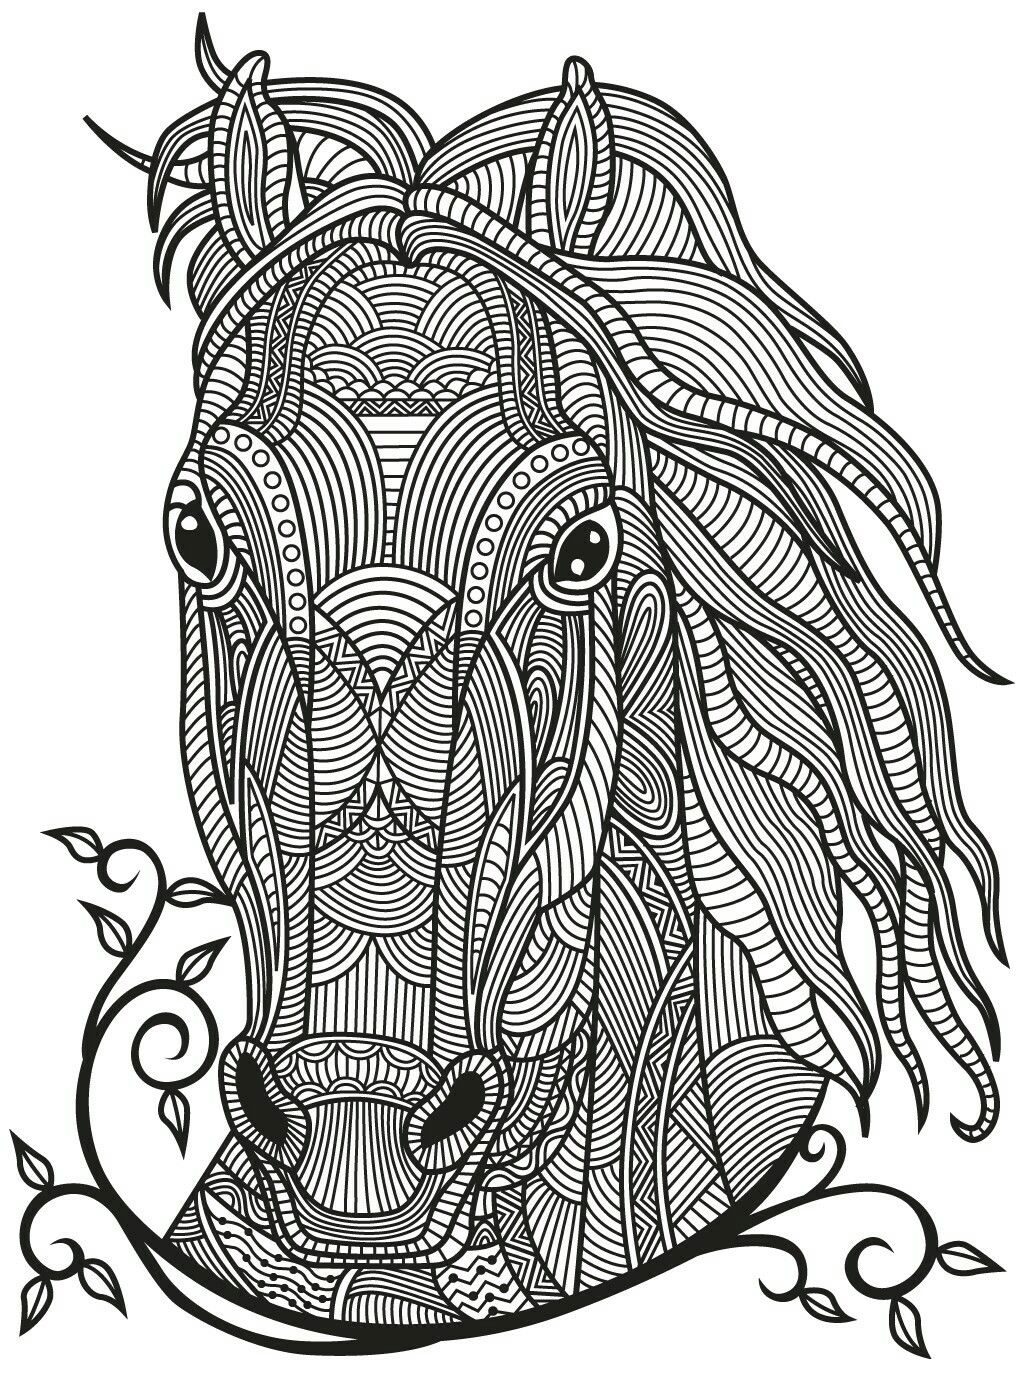 Zen coloring books for adults app - Horse Zentangle Colorish Coloring Book App For Adults Mandala Relax By Goodsofttech